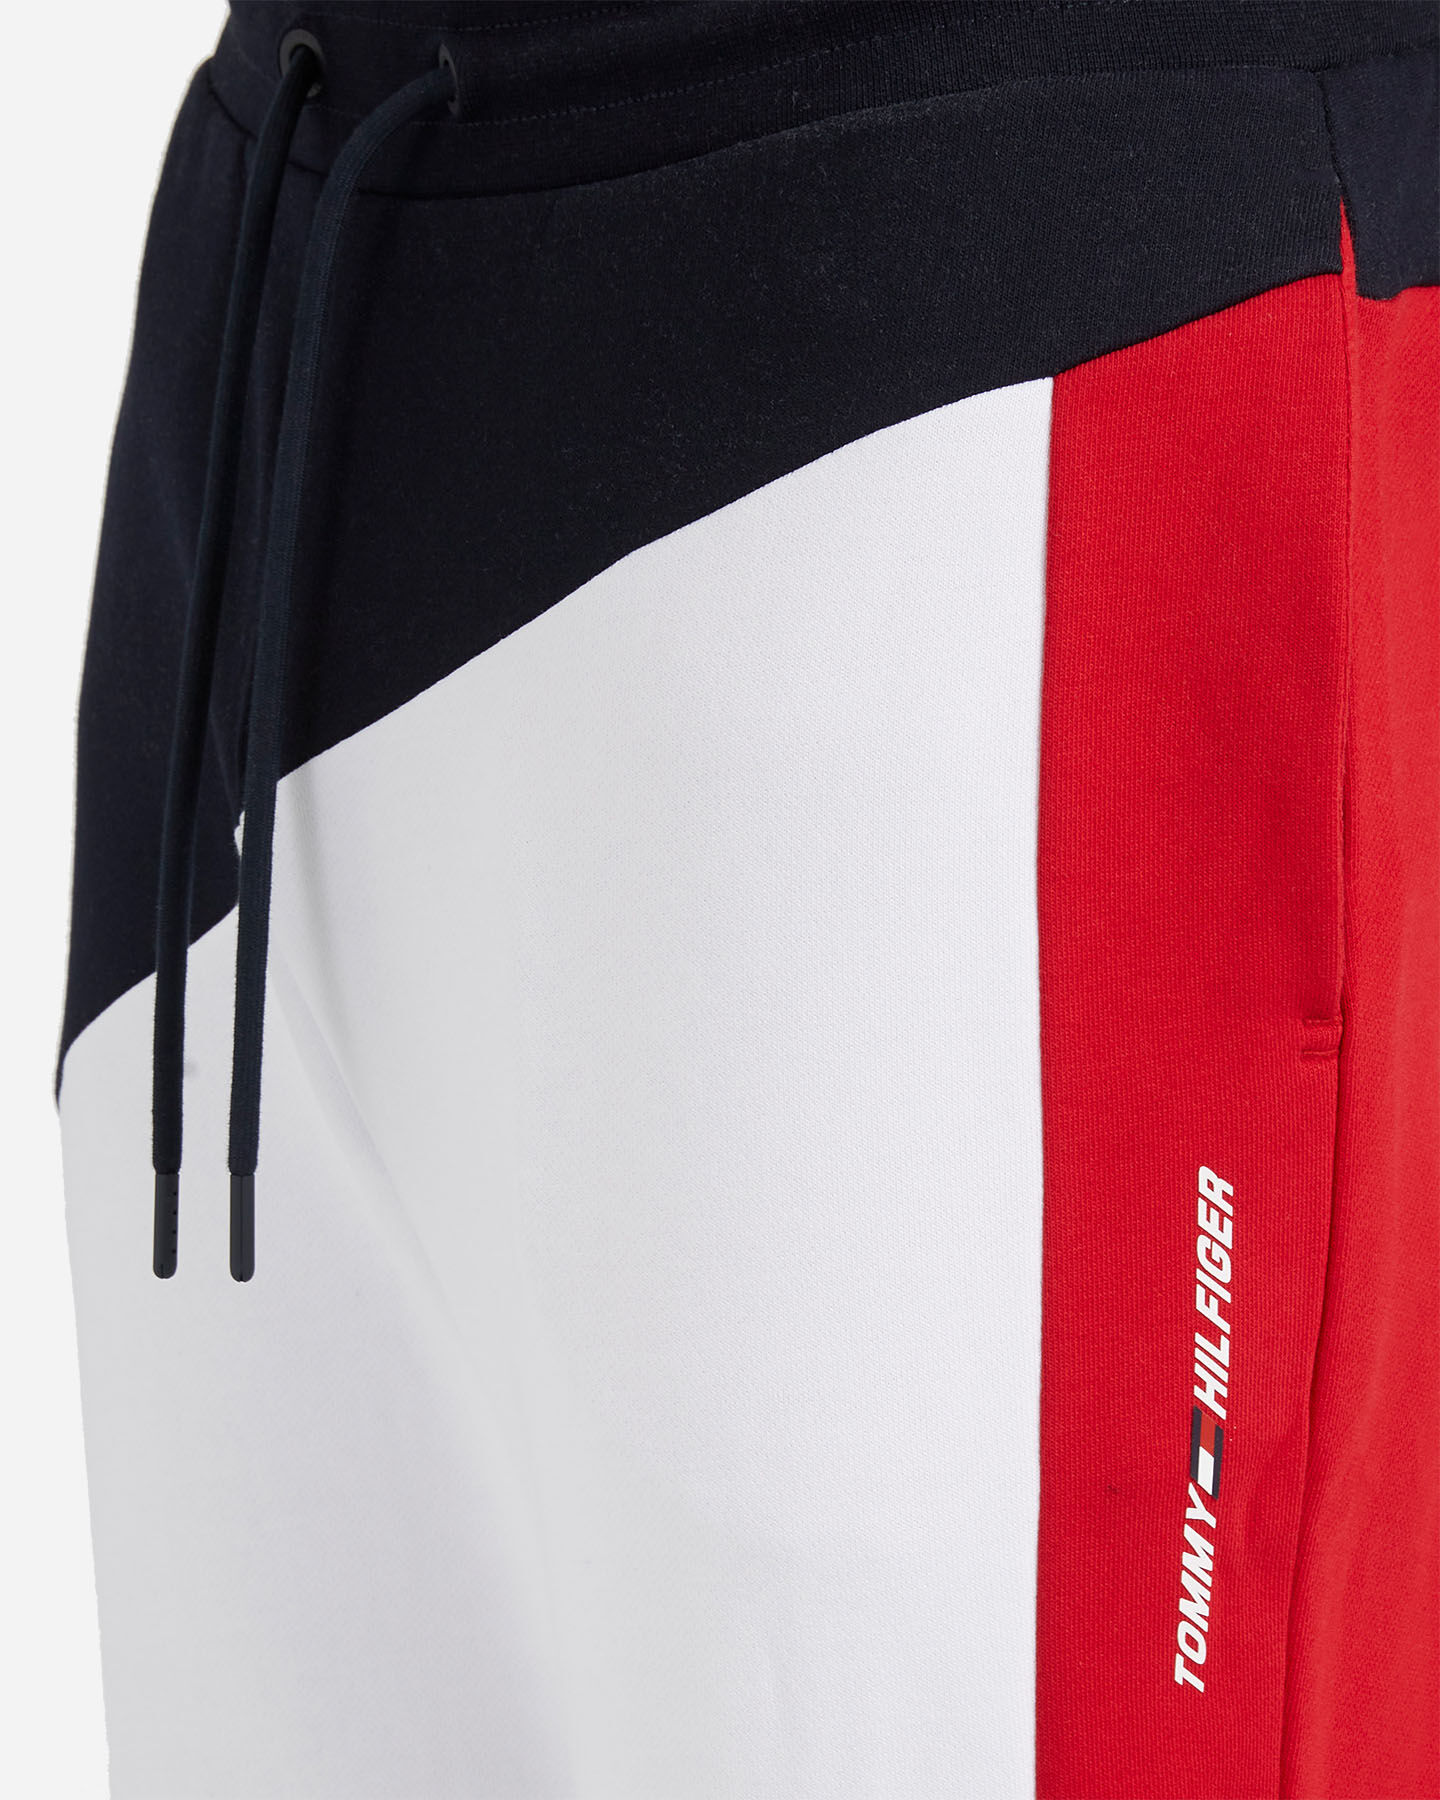 Pantalone TOMMY HILFIGER COLOR M S4089516 scatto 3